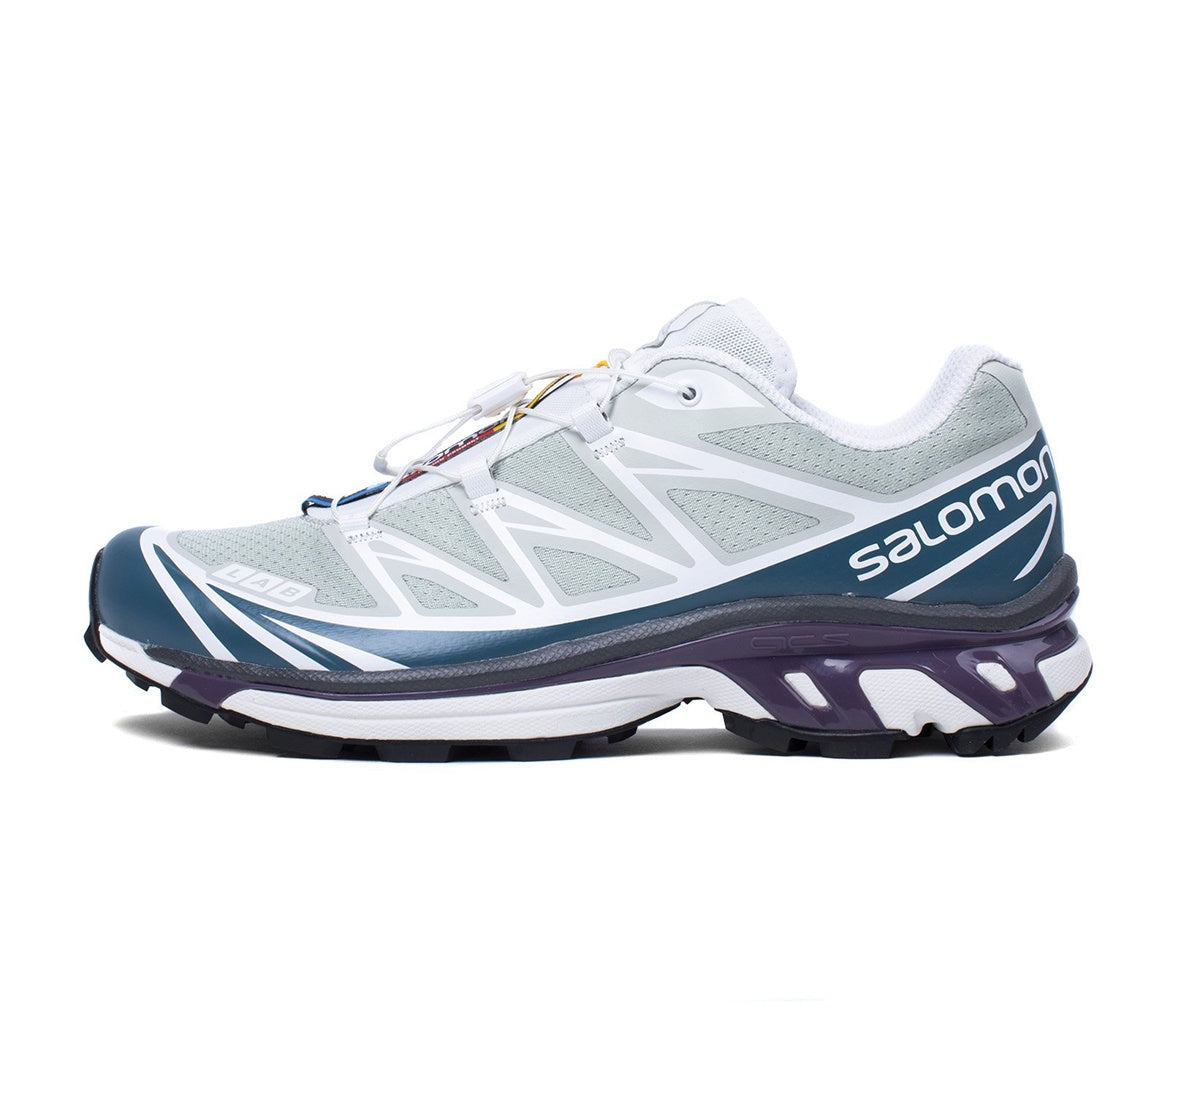 Salomon S/LAB XT-6 - MINERAL GRAY/MALLARD BLUE/WHITE